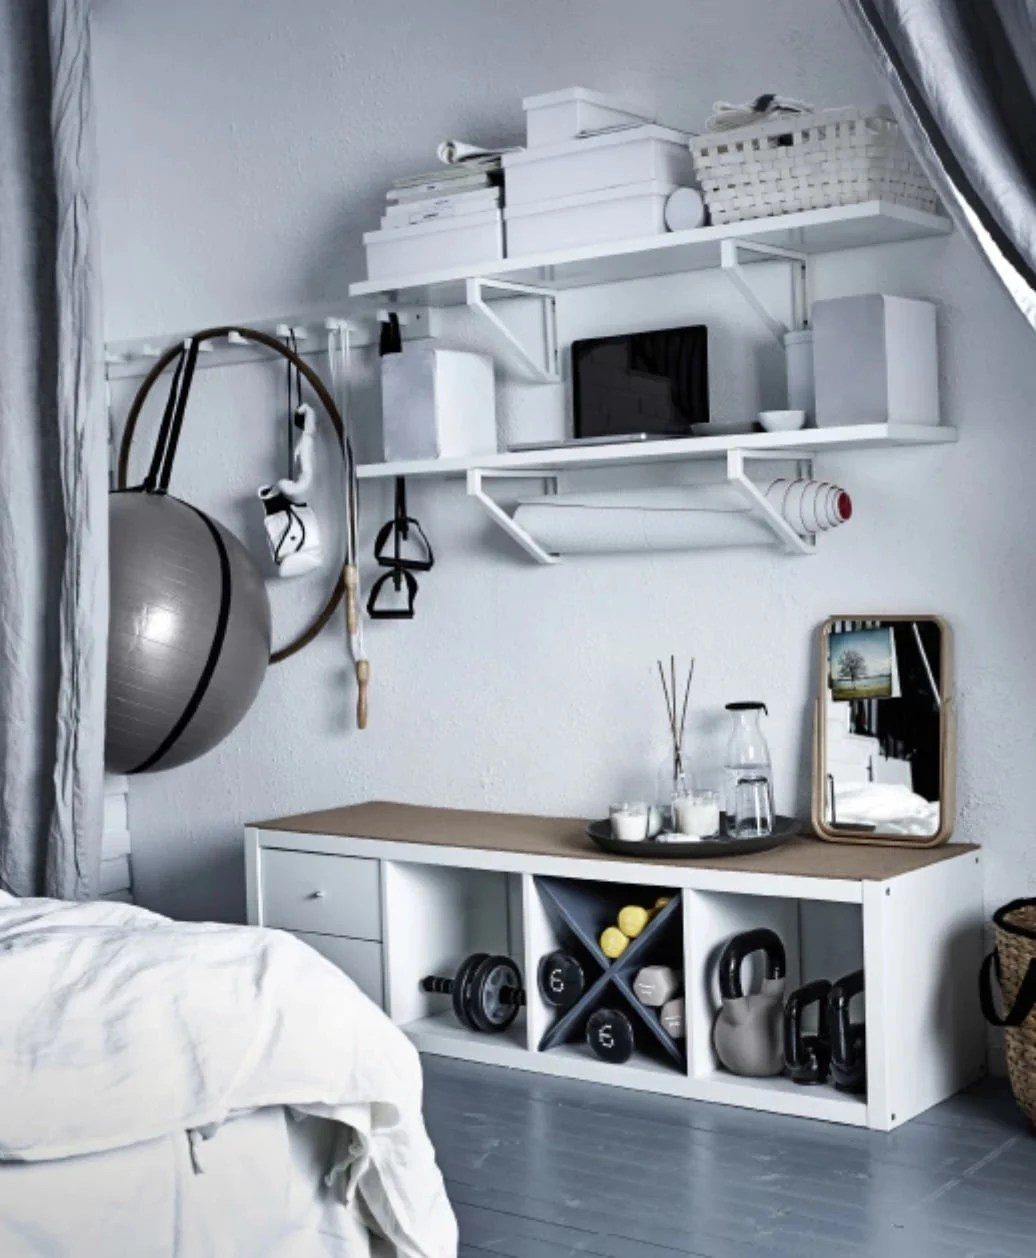 6 essential things from IKEA for your Home Gym - IKEA Hackers